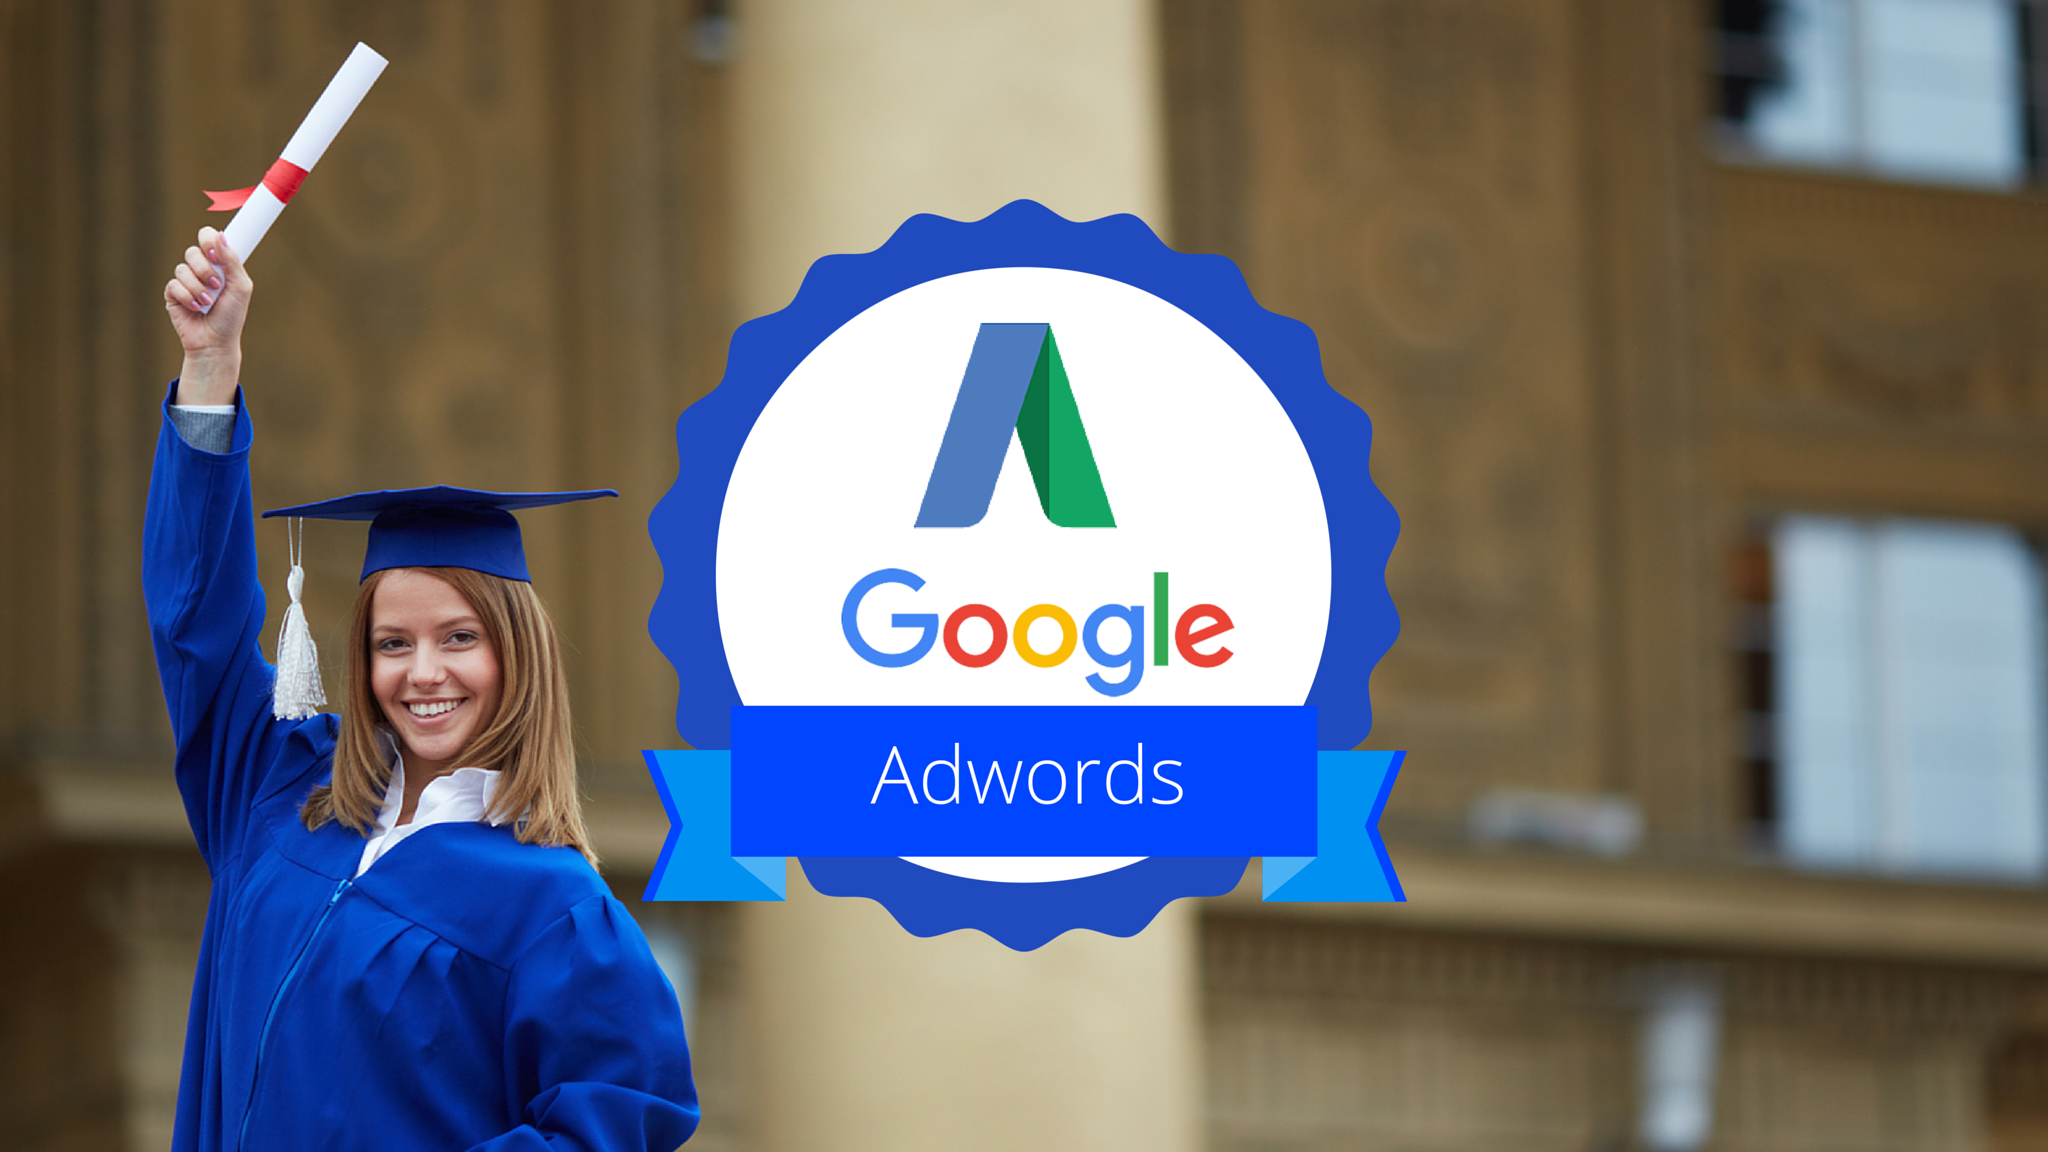 Google Adwords Certification: Tips to Get Certified in 2 Days!